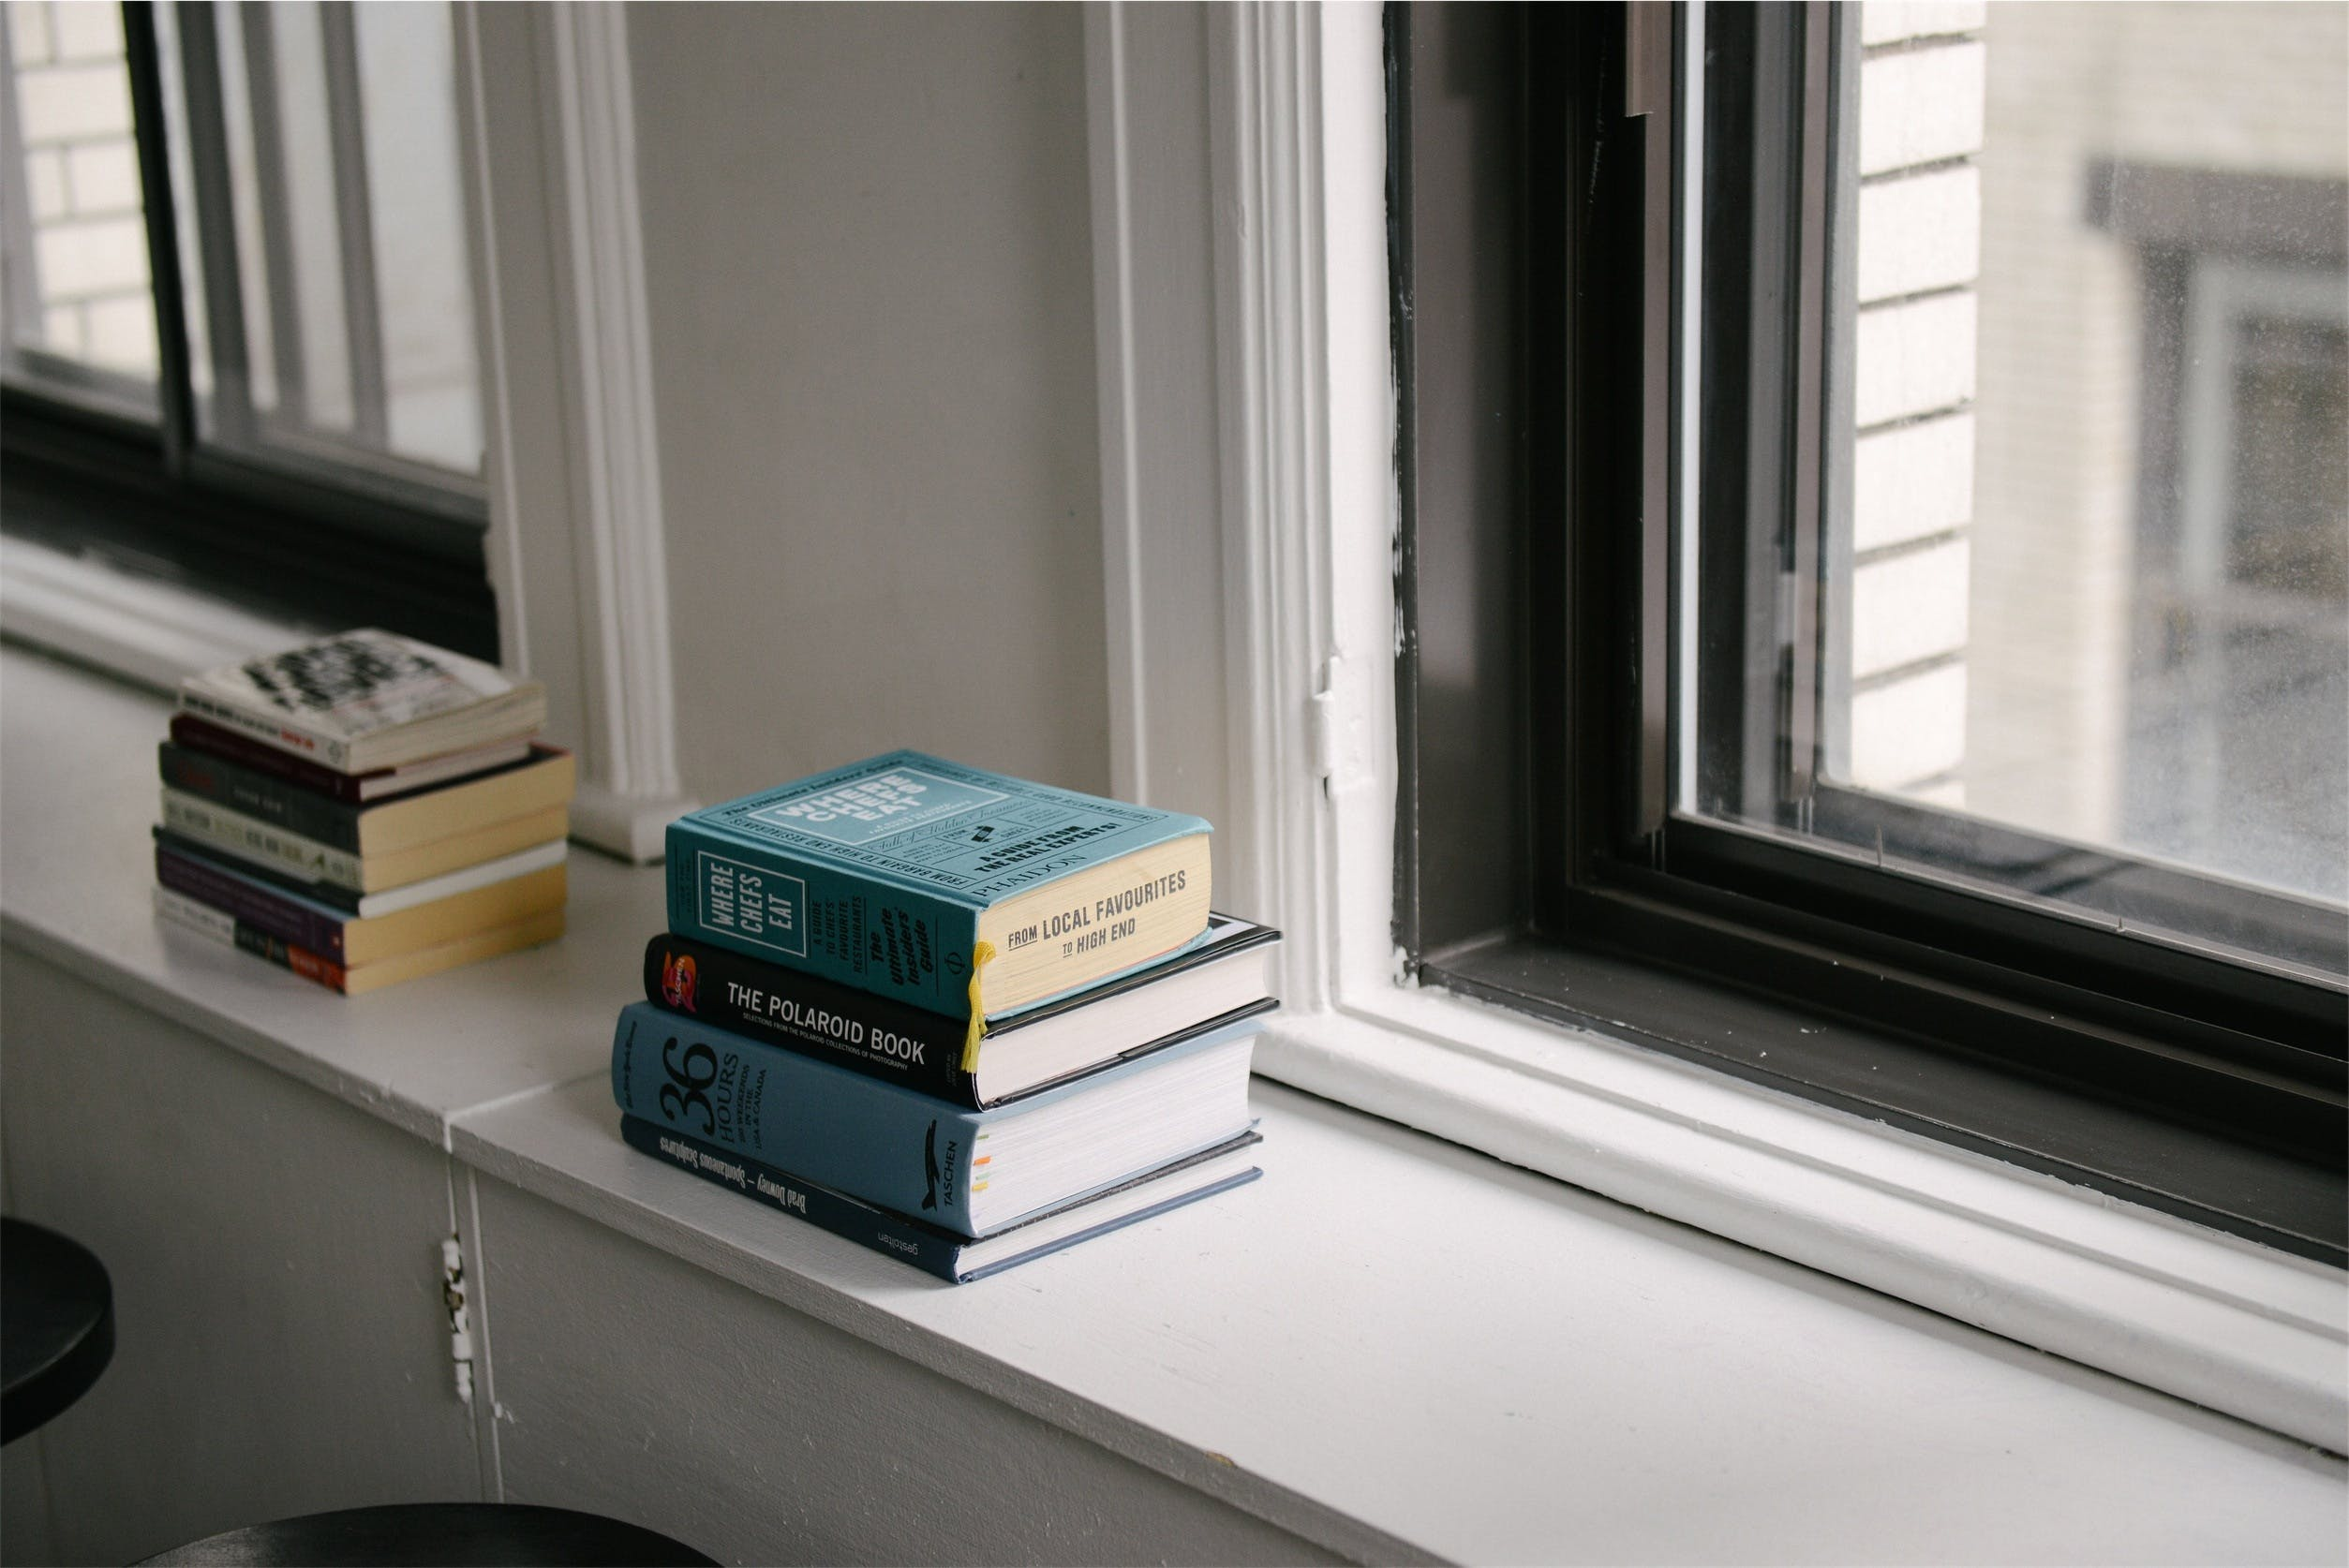 Free stock photo of light, books, house, glass